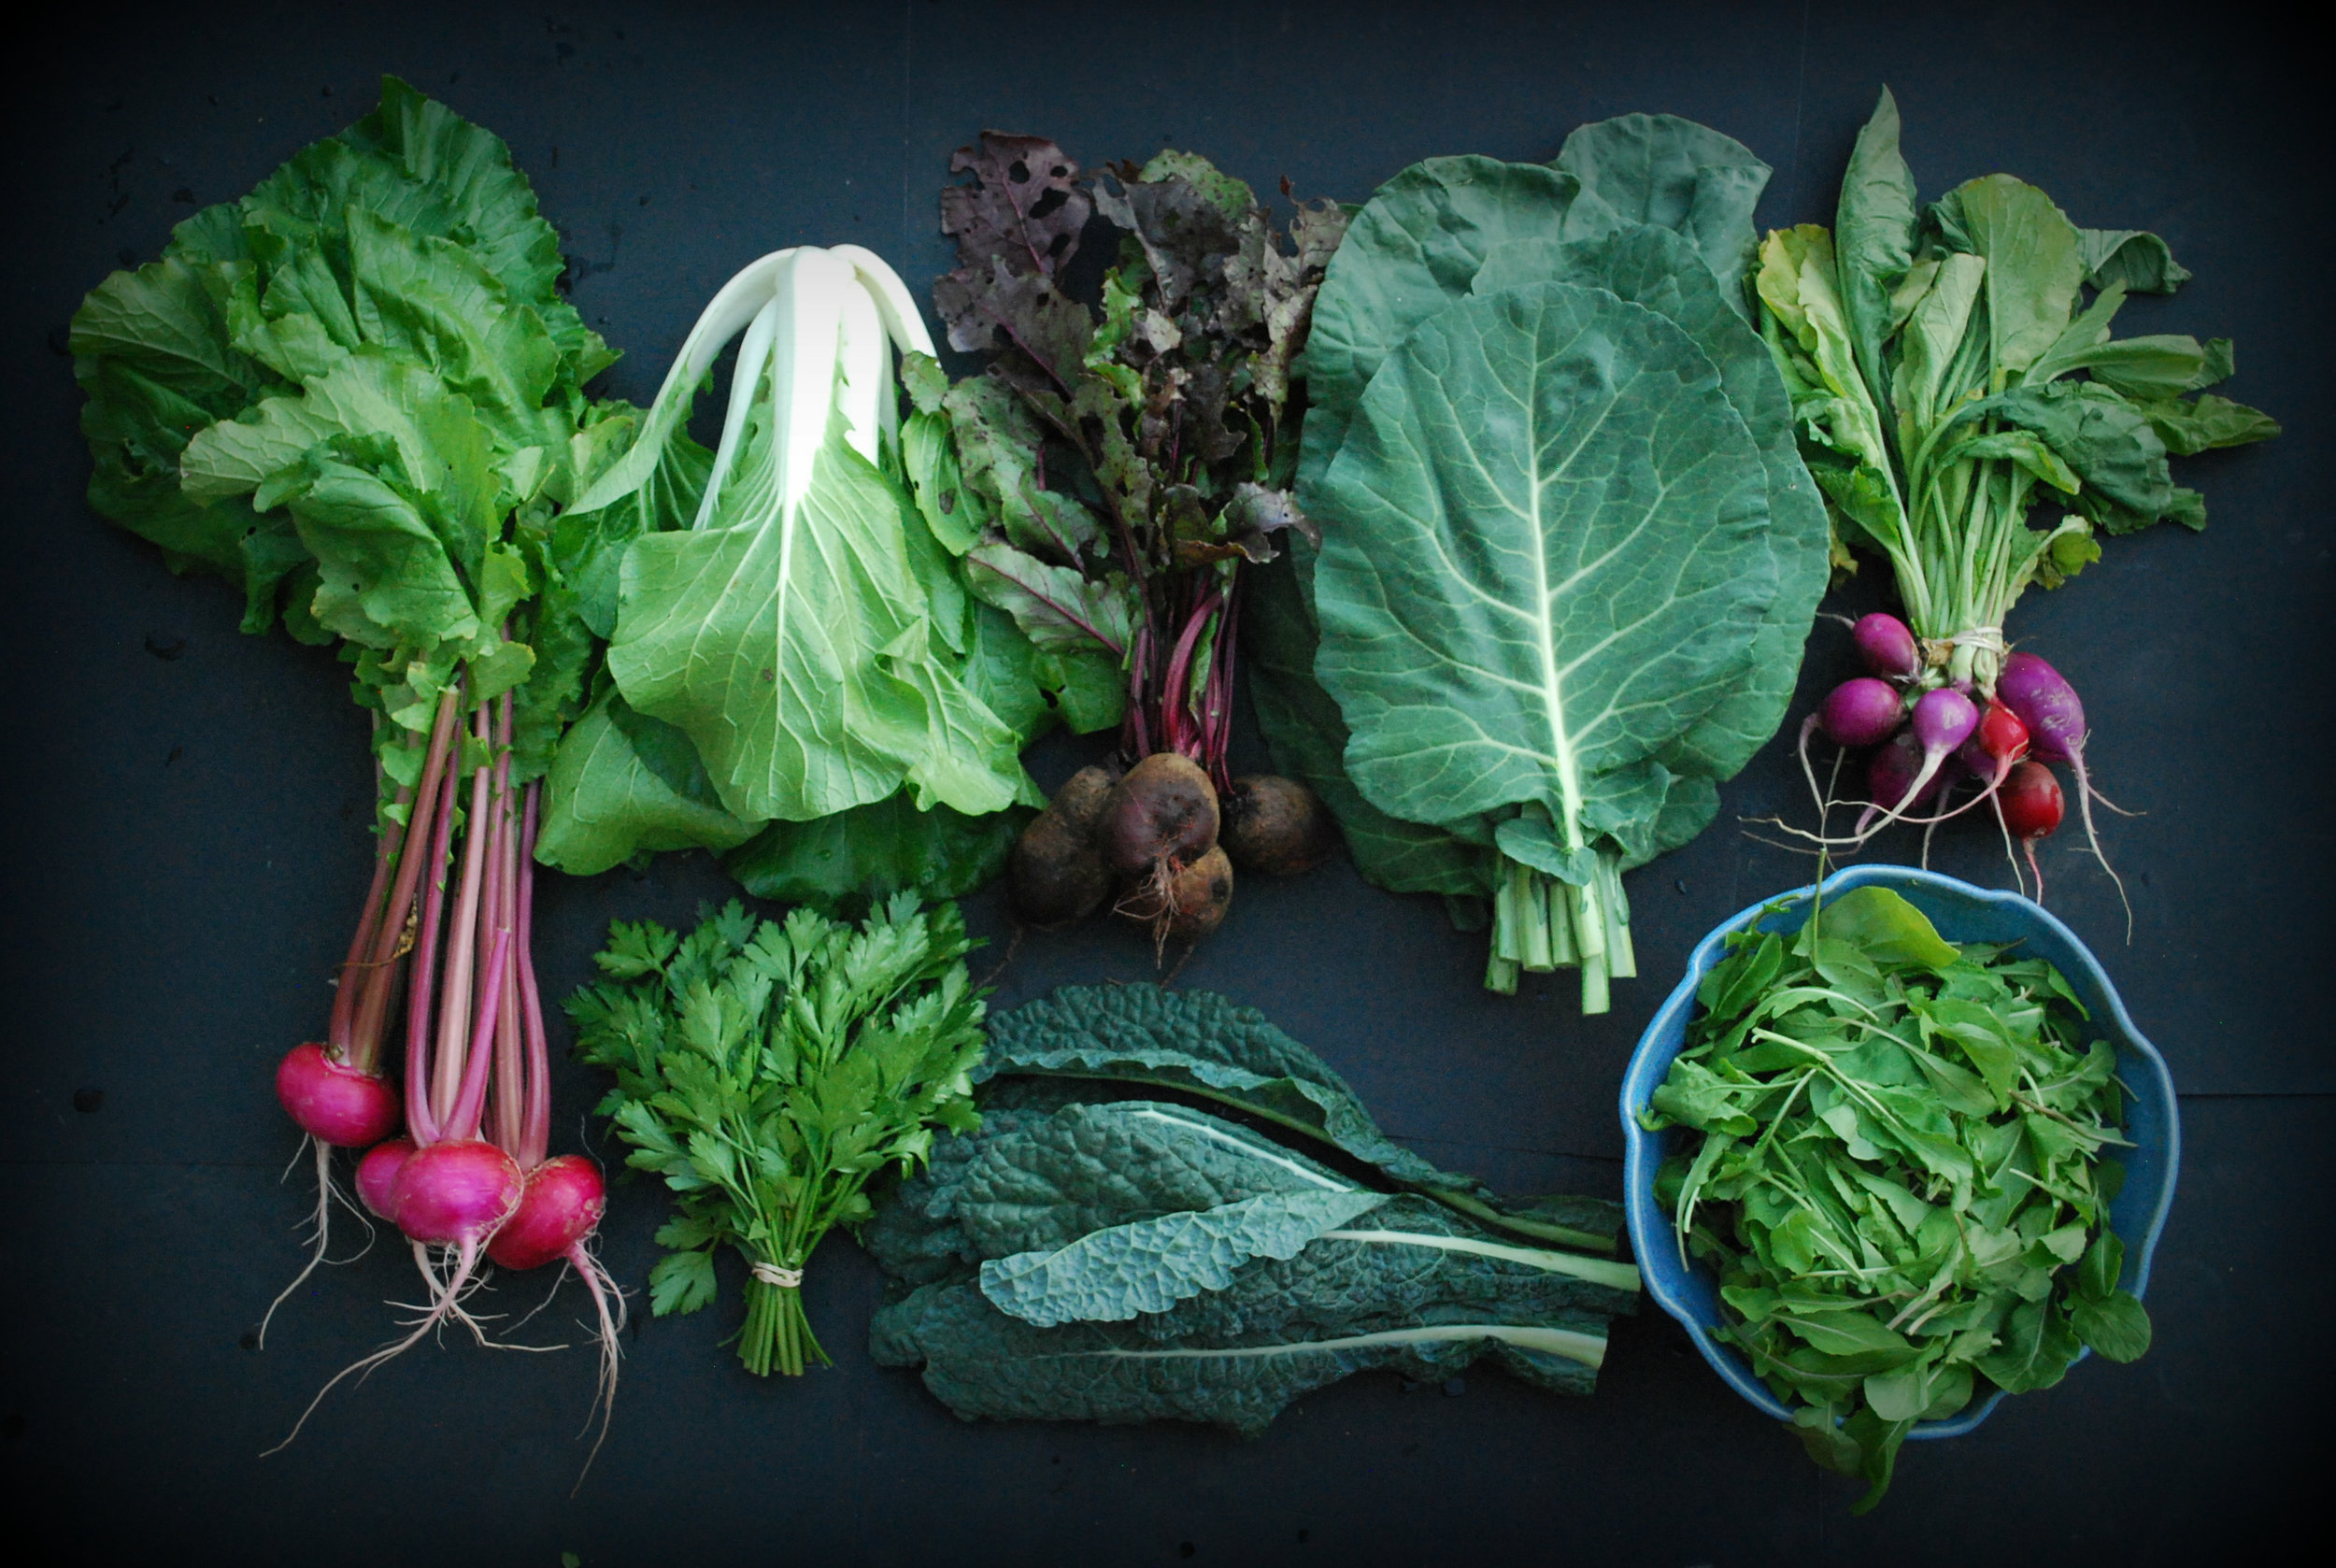 Your Week 3 share: Scarlet Queen turnips, bok choy, parsley, beets, dinosaur kale, collards, Easter egg radishes, arugula.